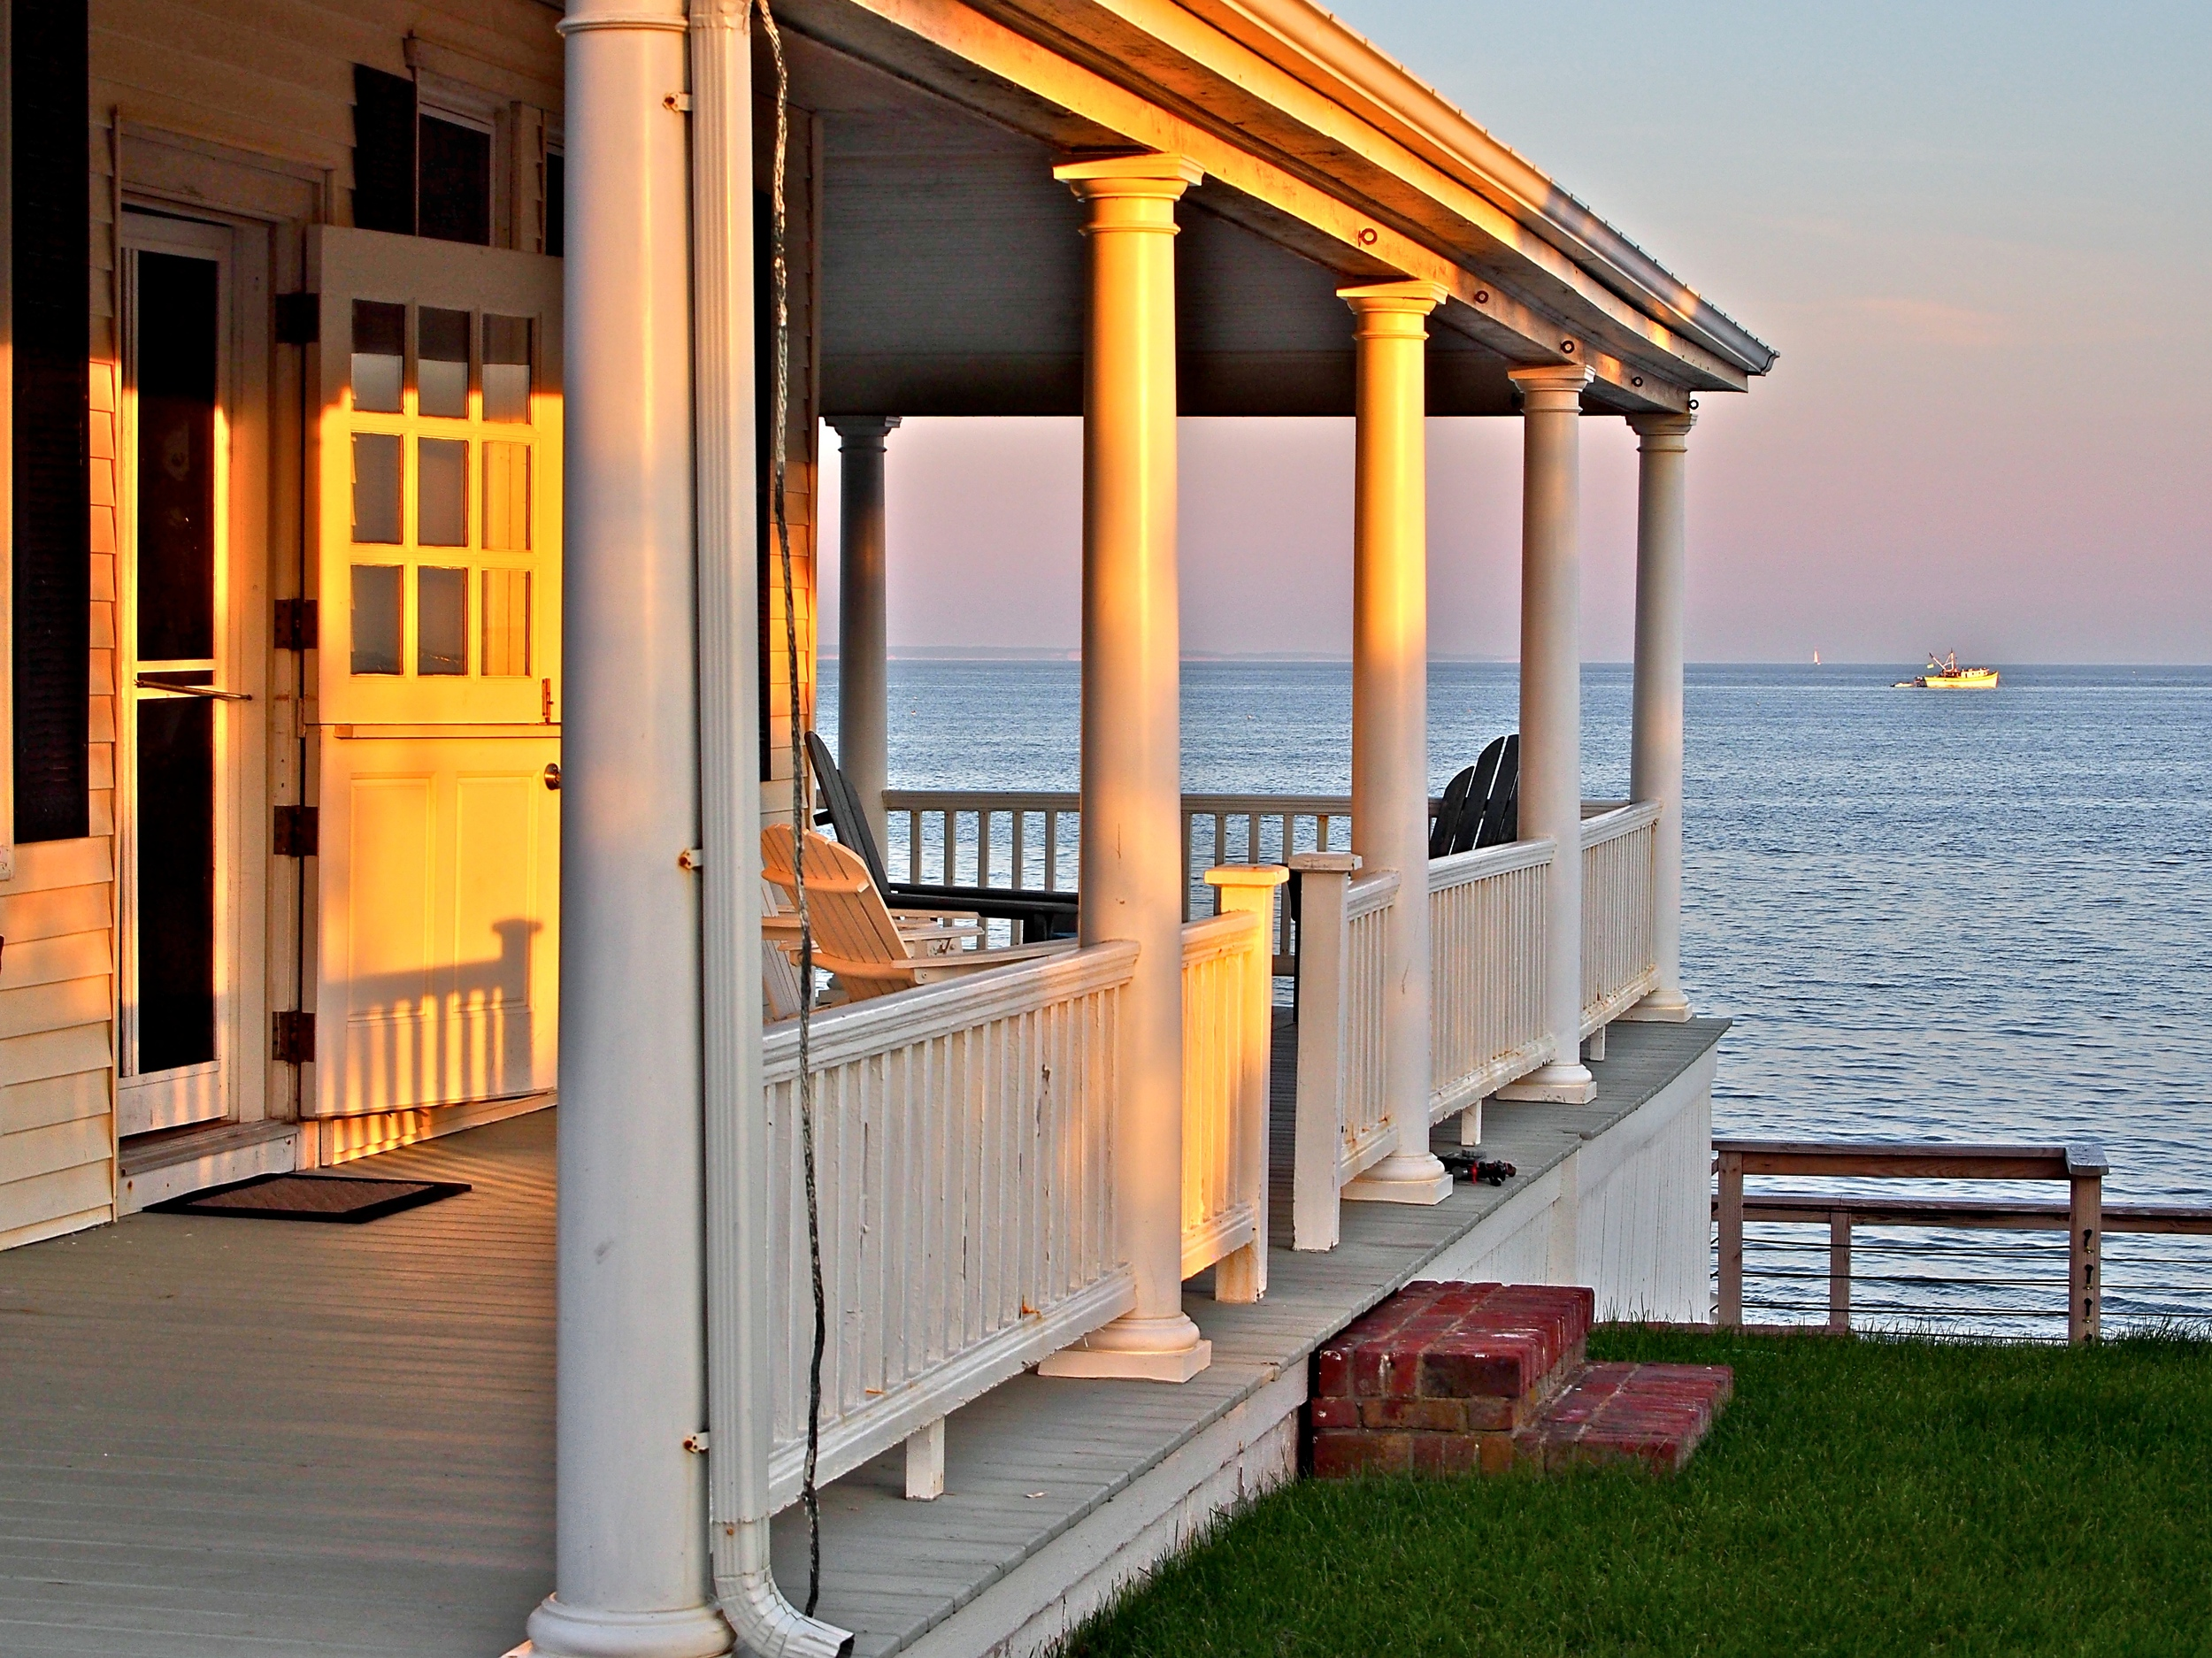 Porch at Sunset, East End